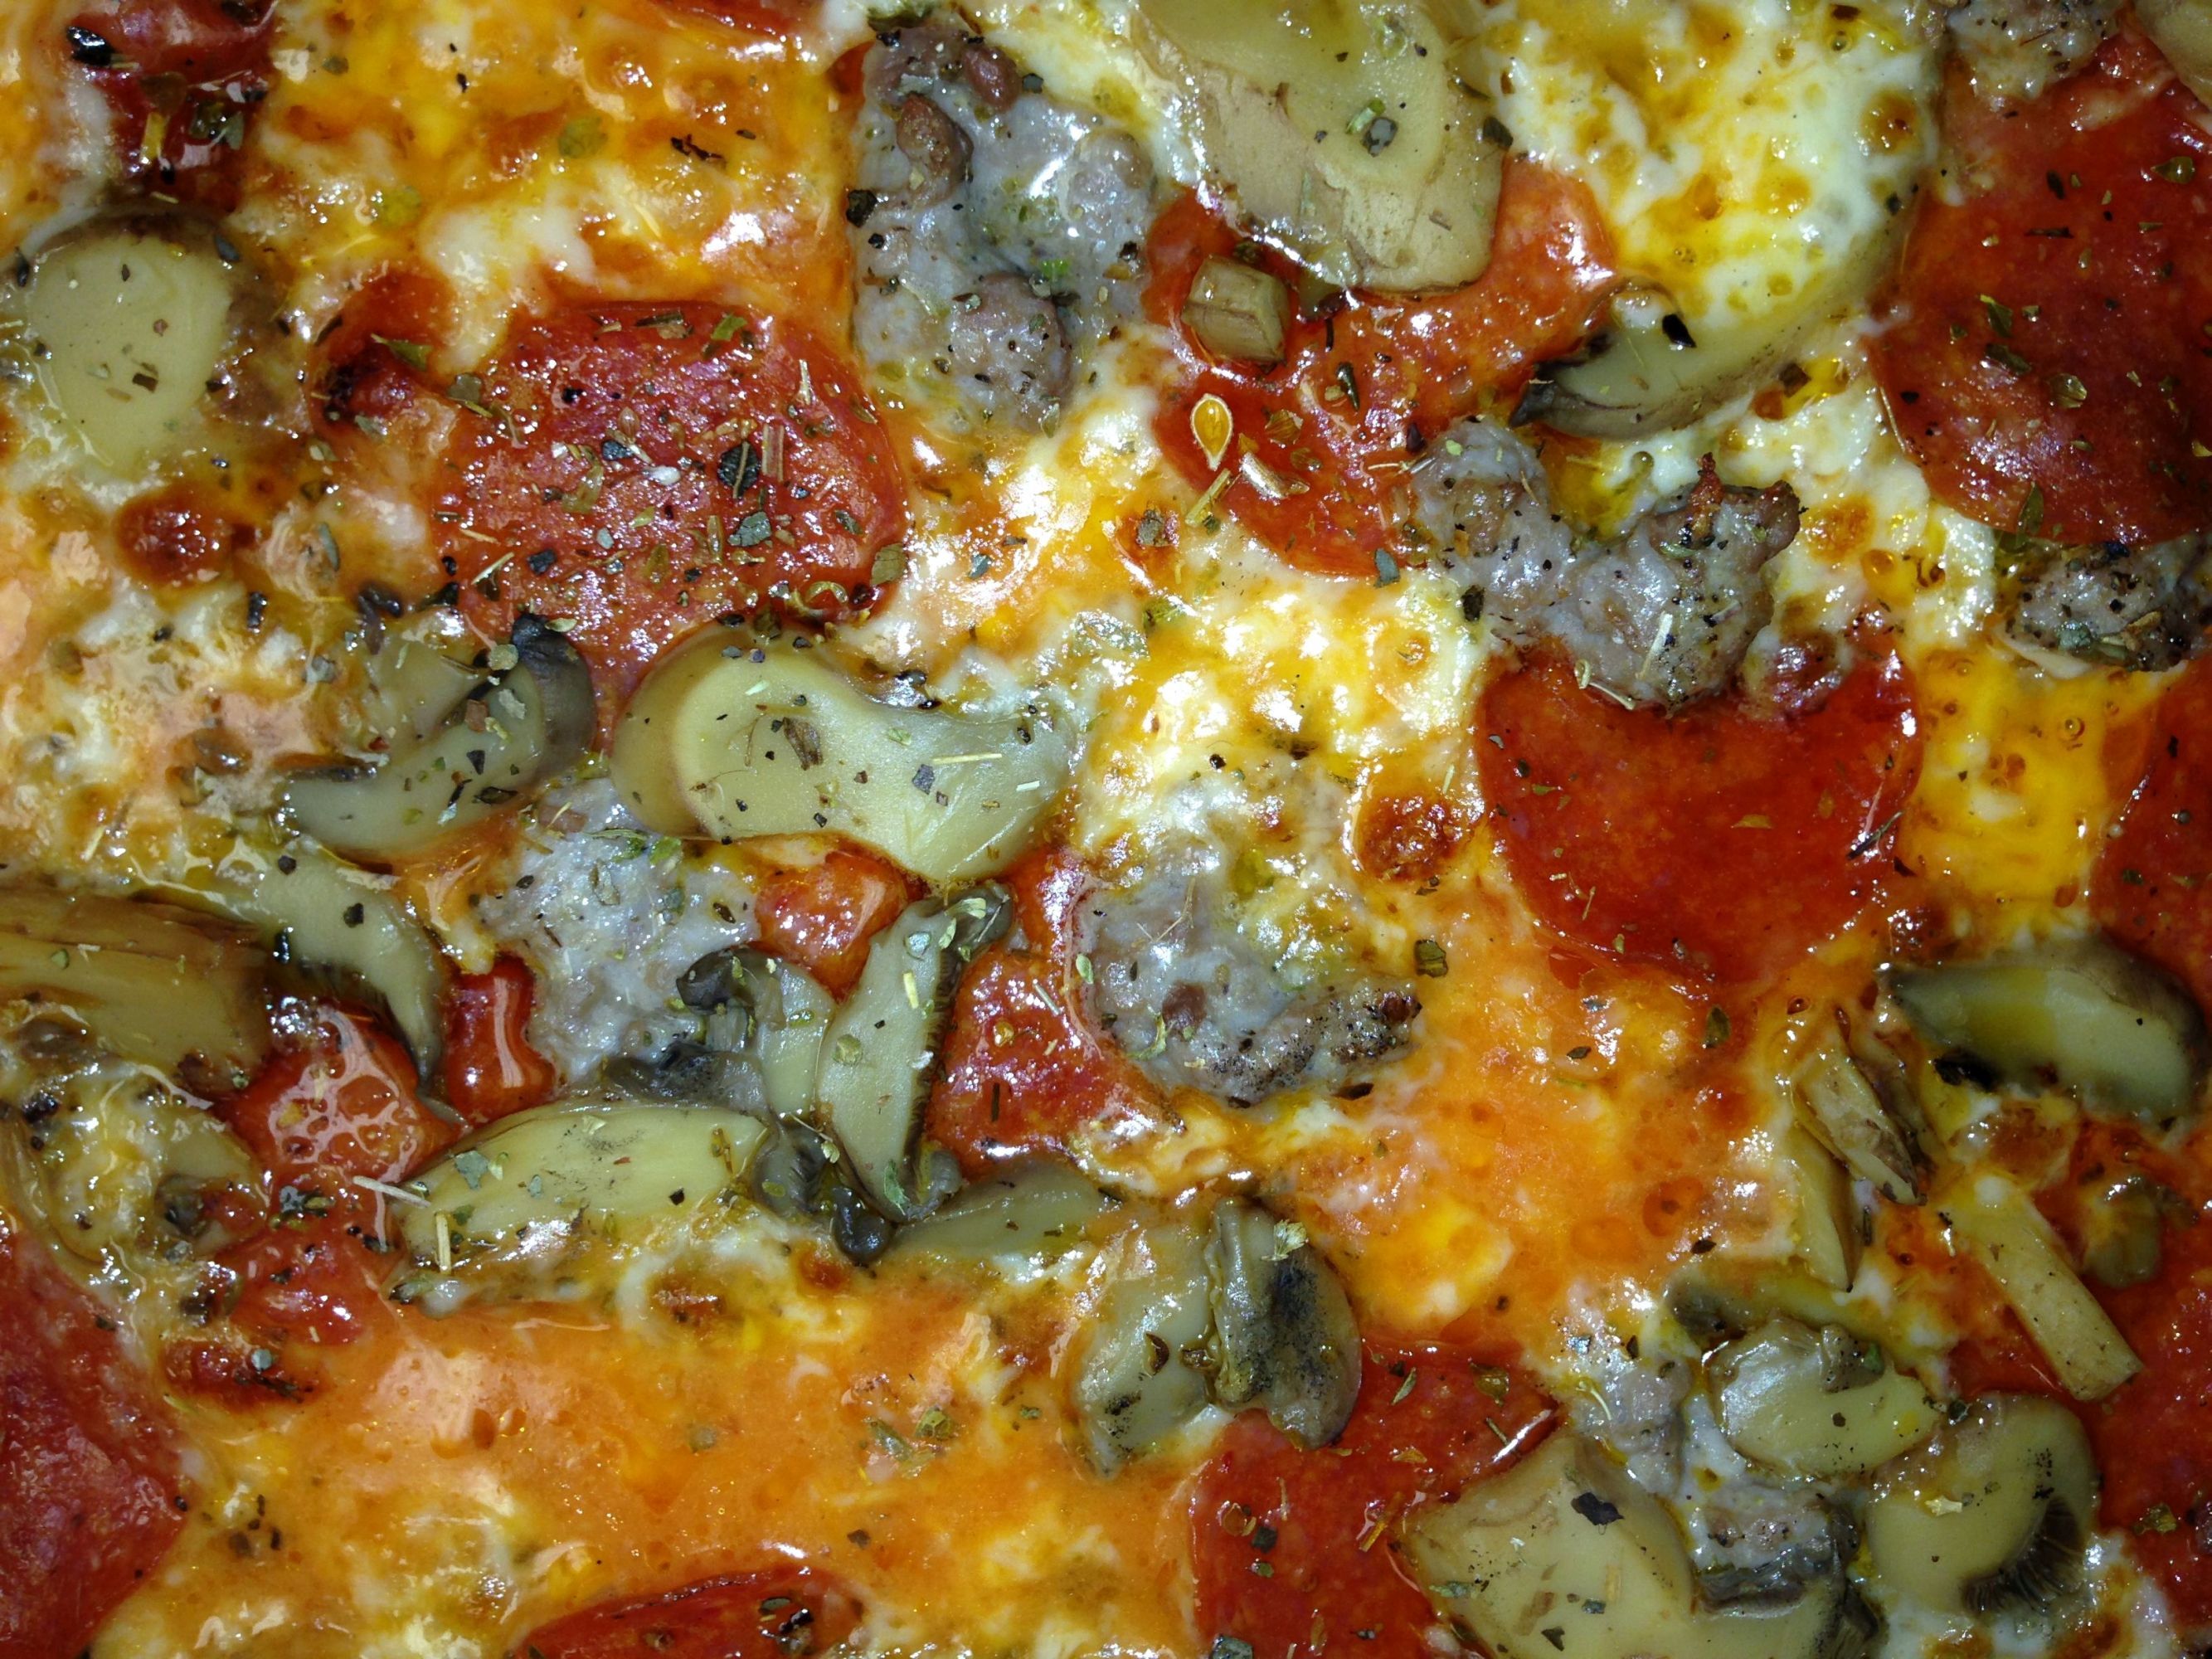 Fricanos_Zoomed in Pepperoni, Sausage, Mushroom Pizza.JPG